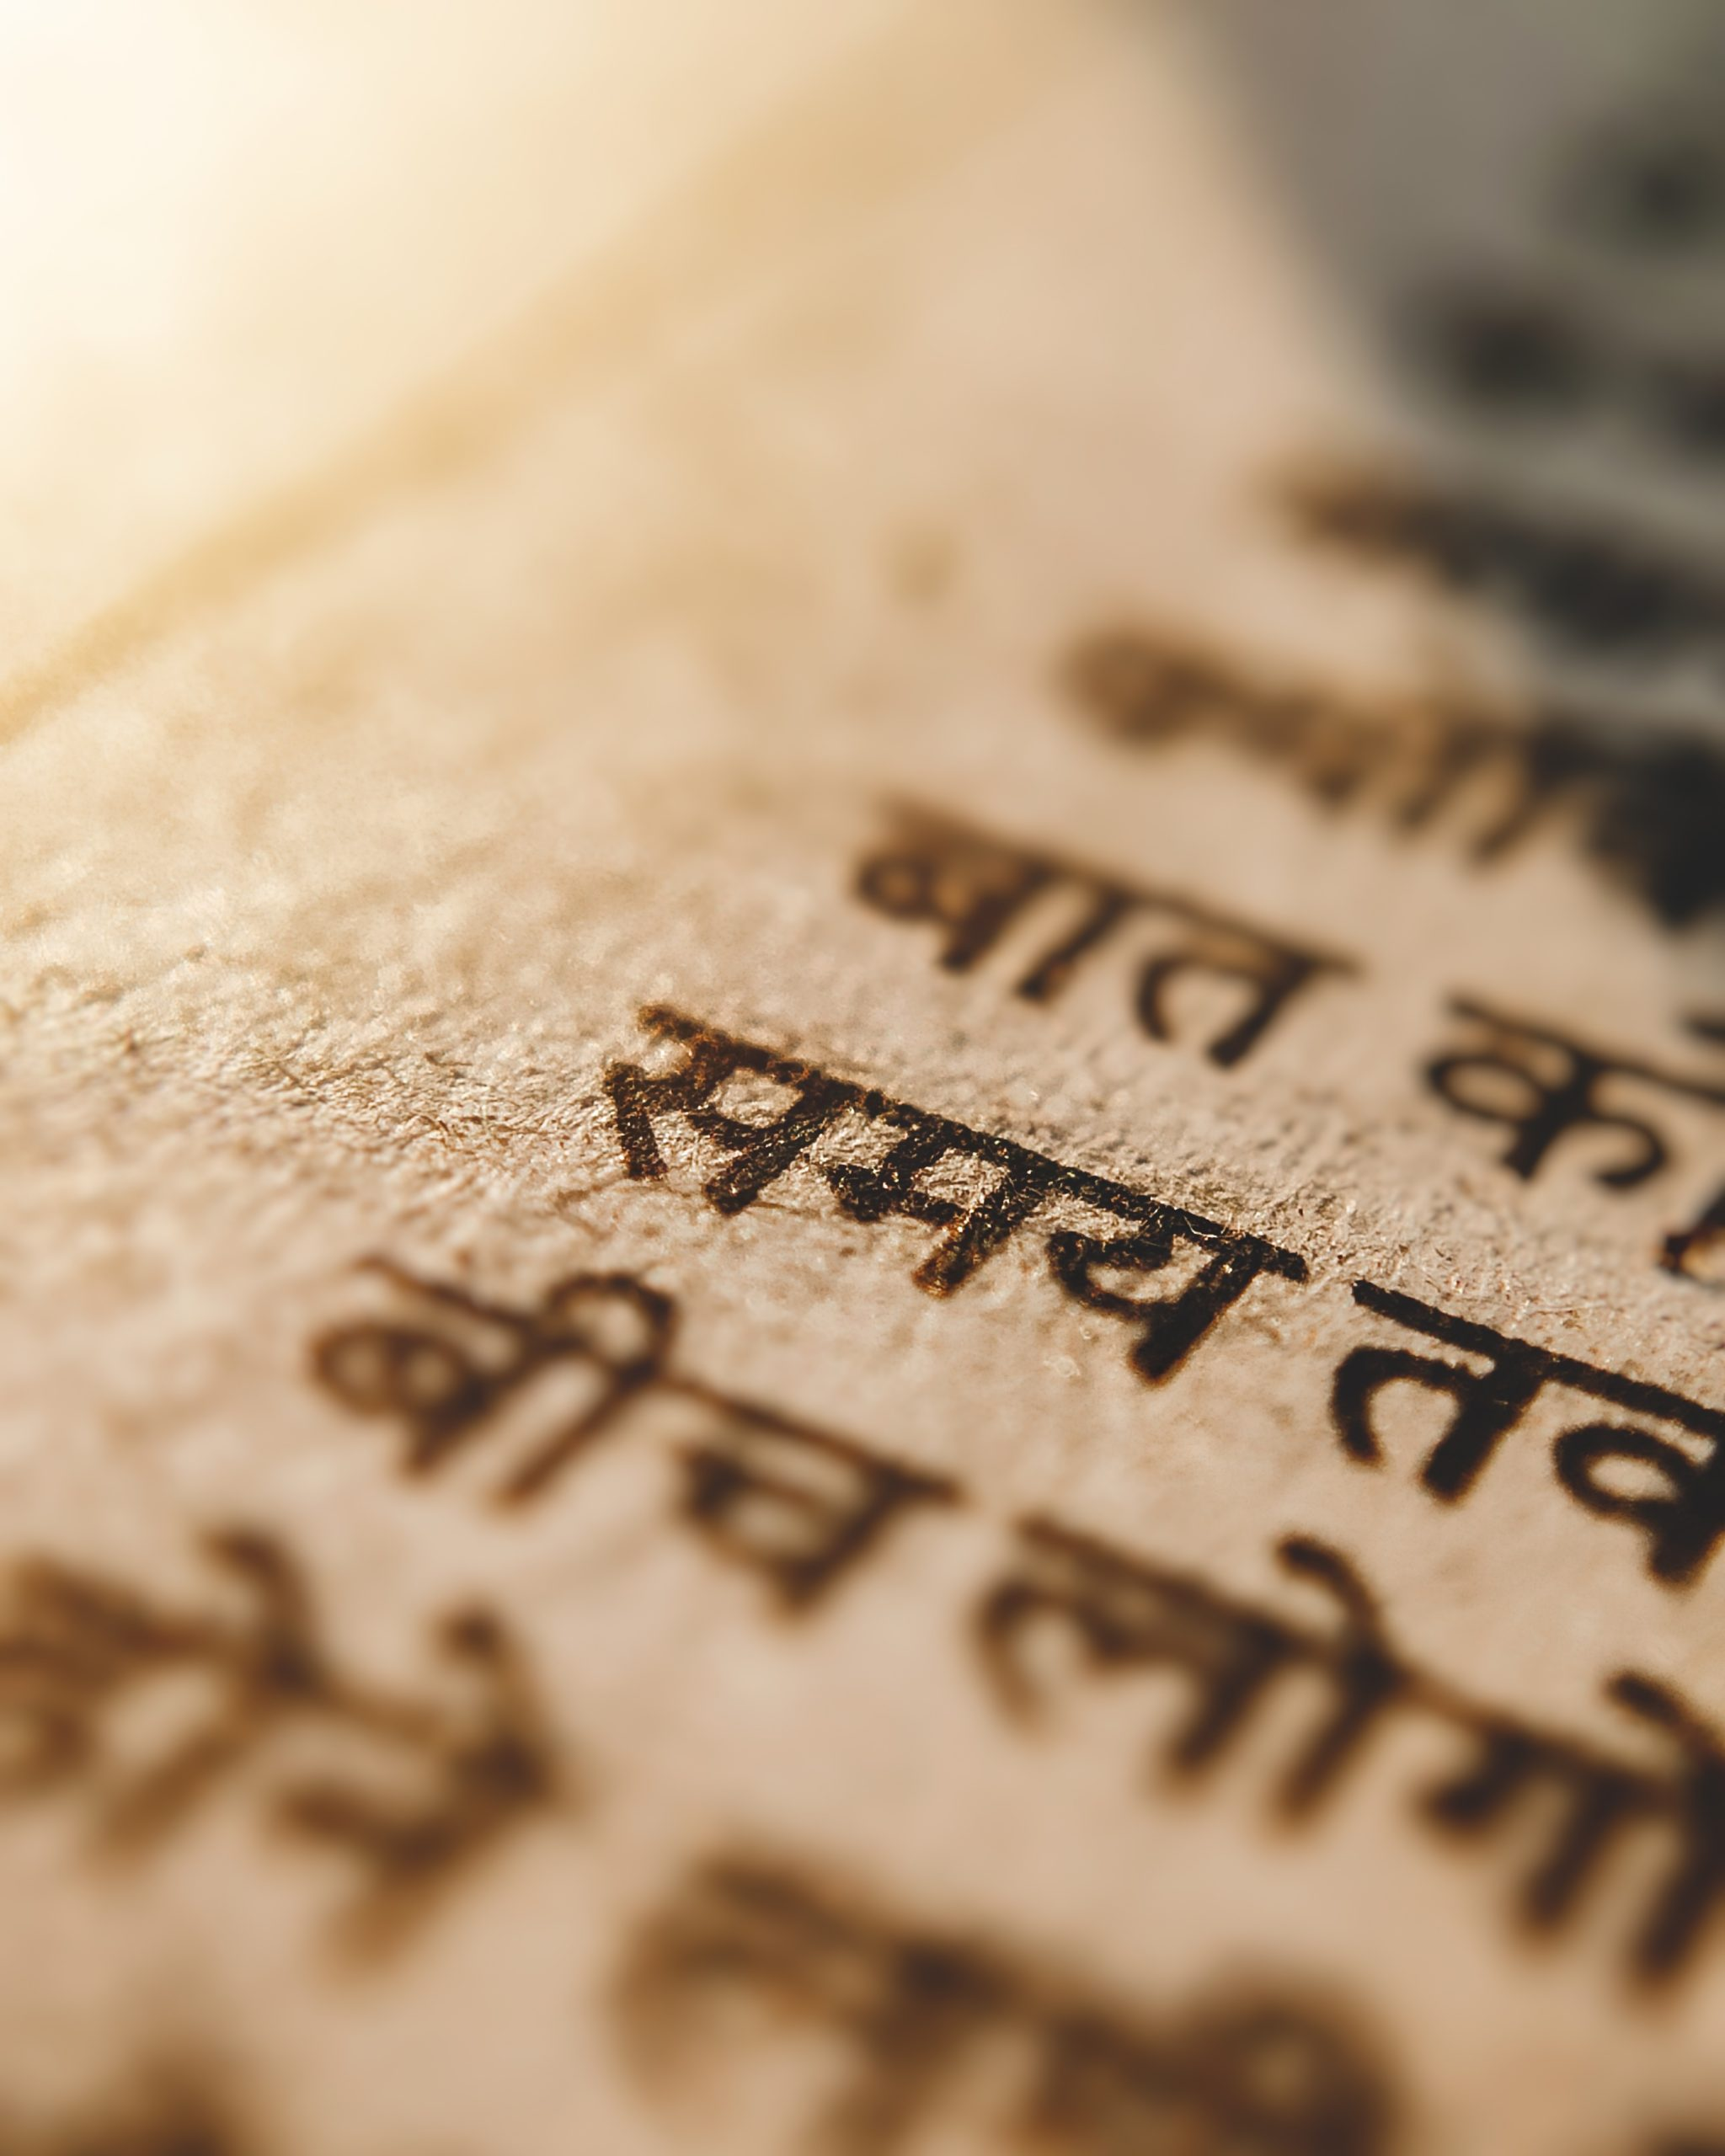 Hindi text on paper